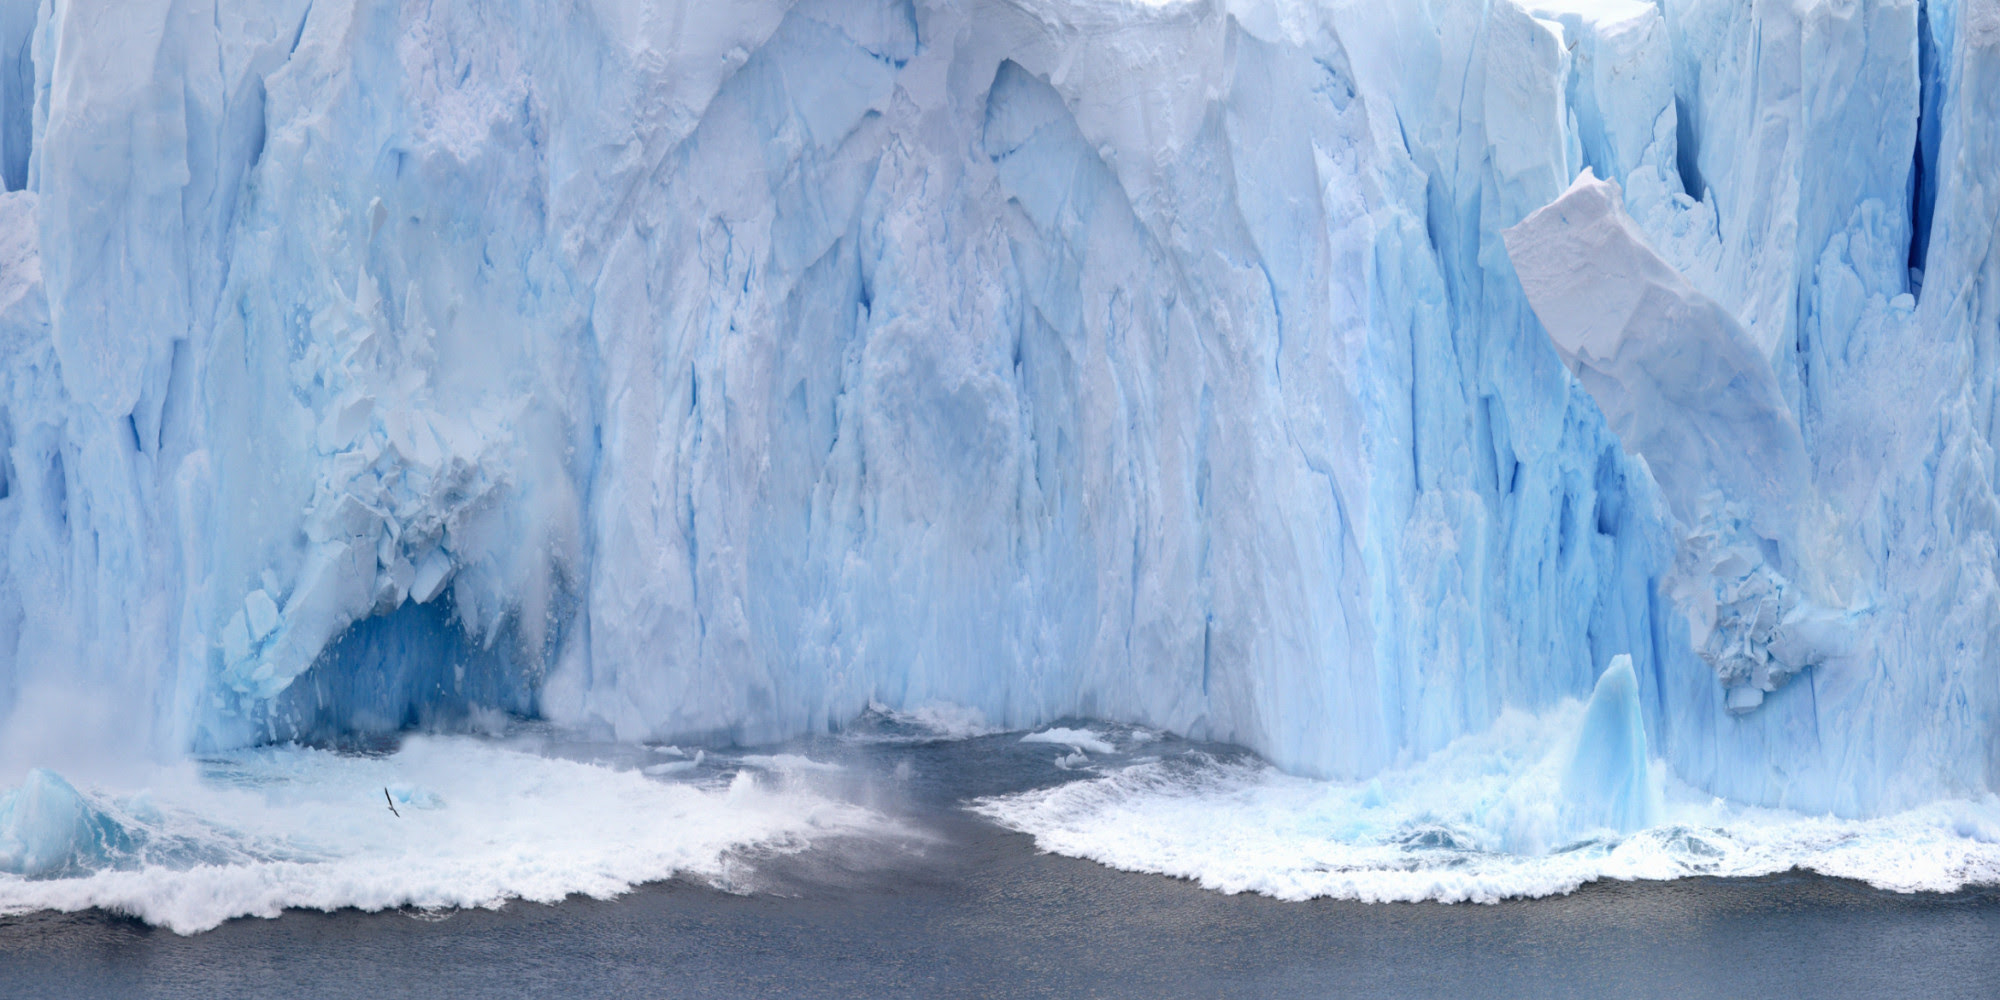 Antarctic Ice Shelf On Brink Of Unstoppable Melt That ...